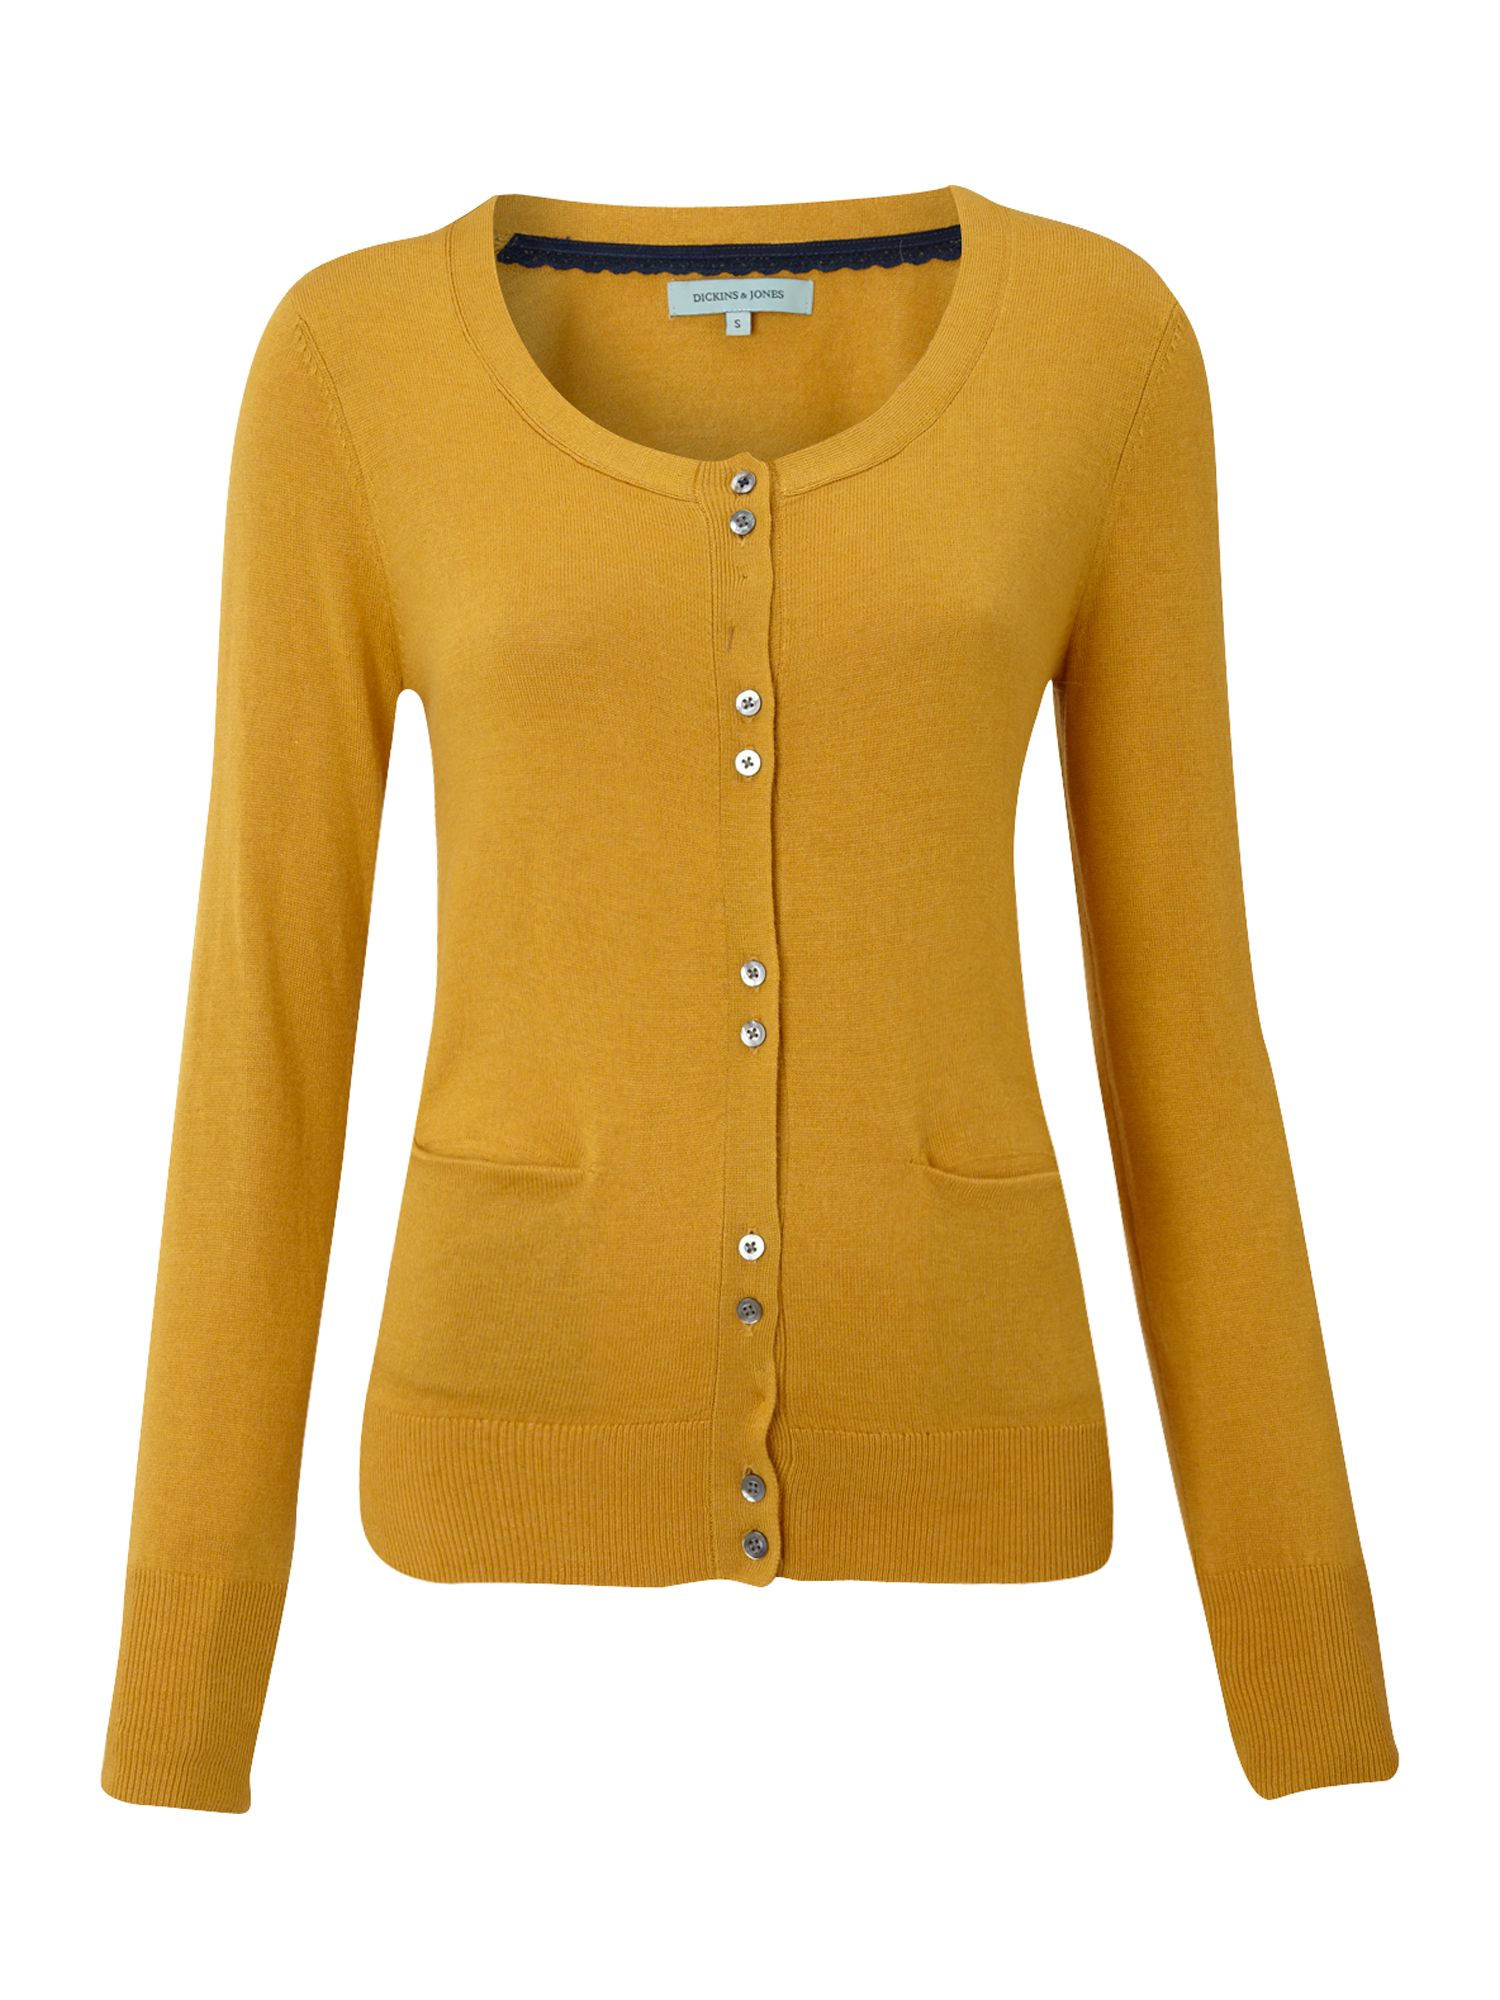 Dickins & jones Ladies Knitted Crew Neck Cardigan in Yellow | Lyst